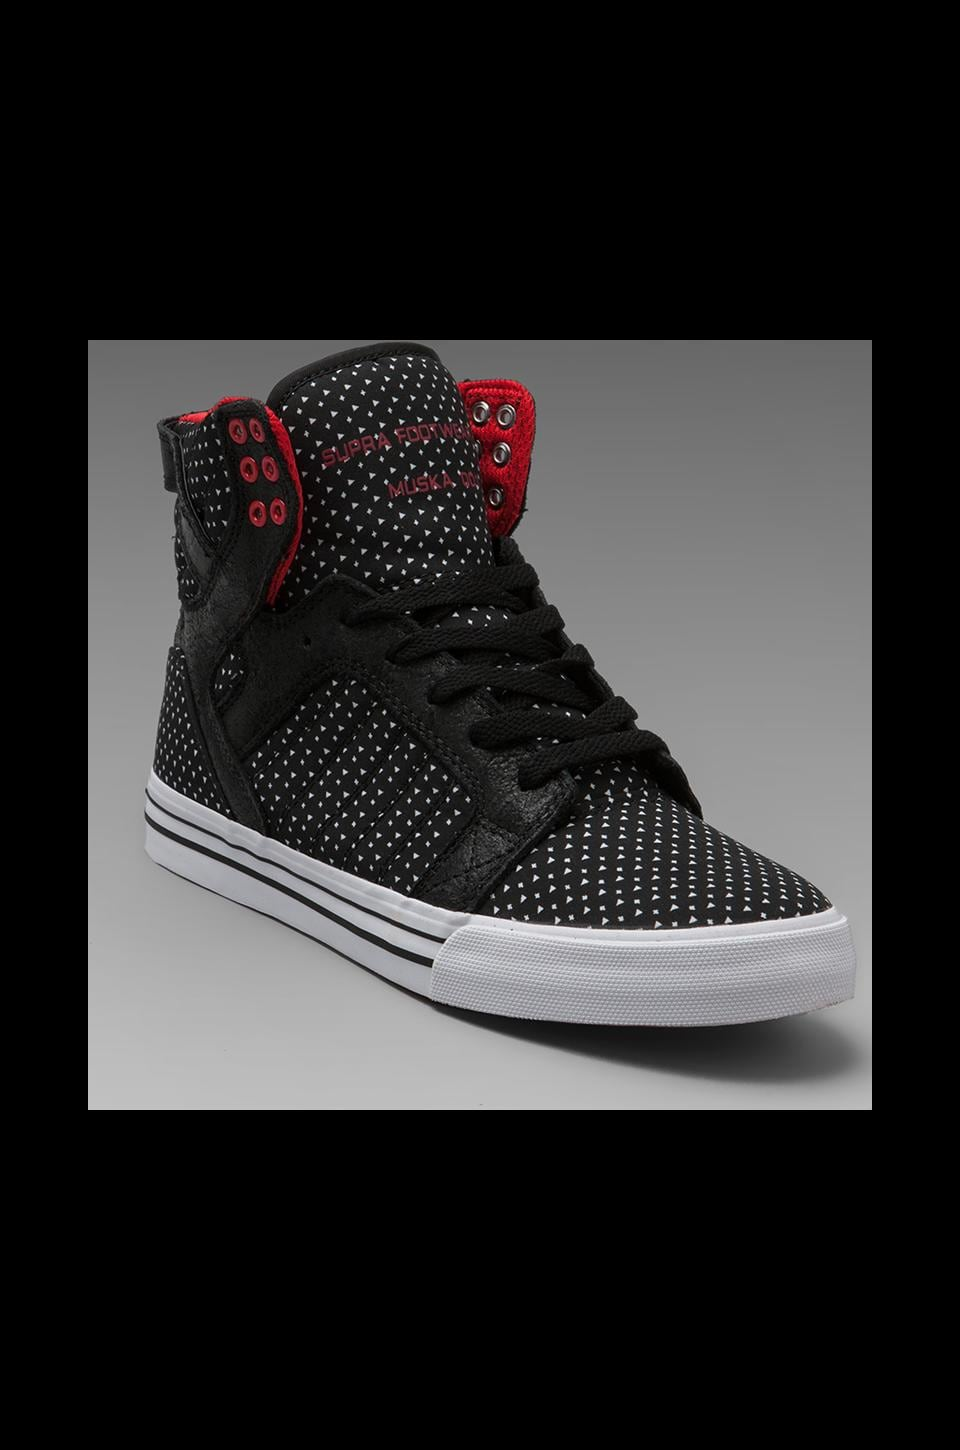 Supra Estate Skytop in Black w/ Polka Dots